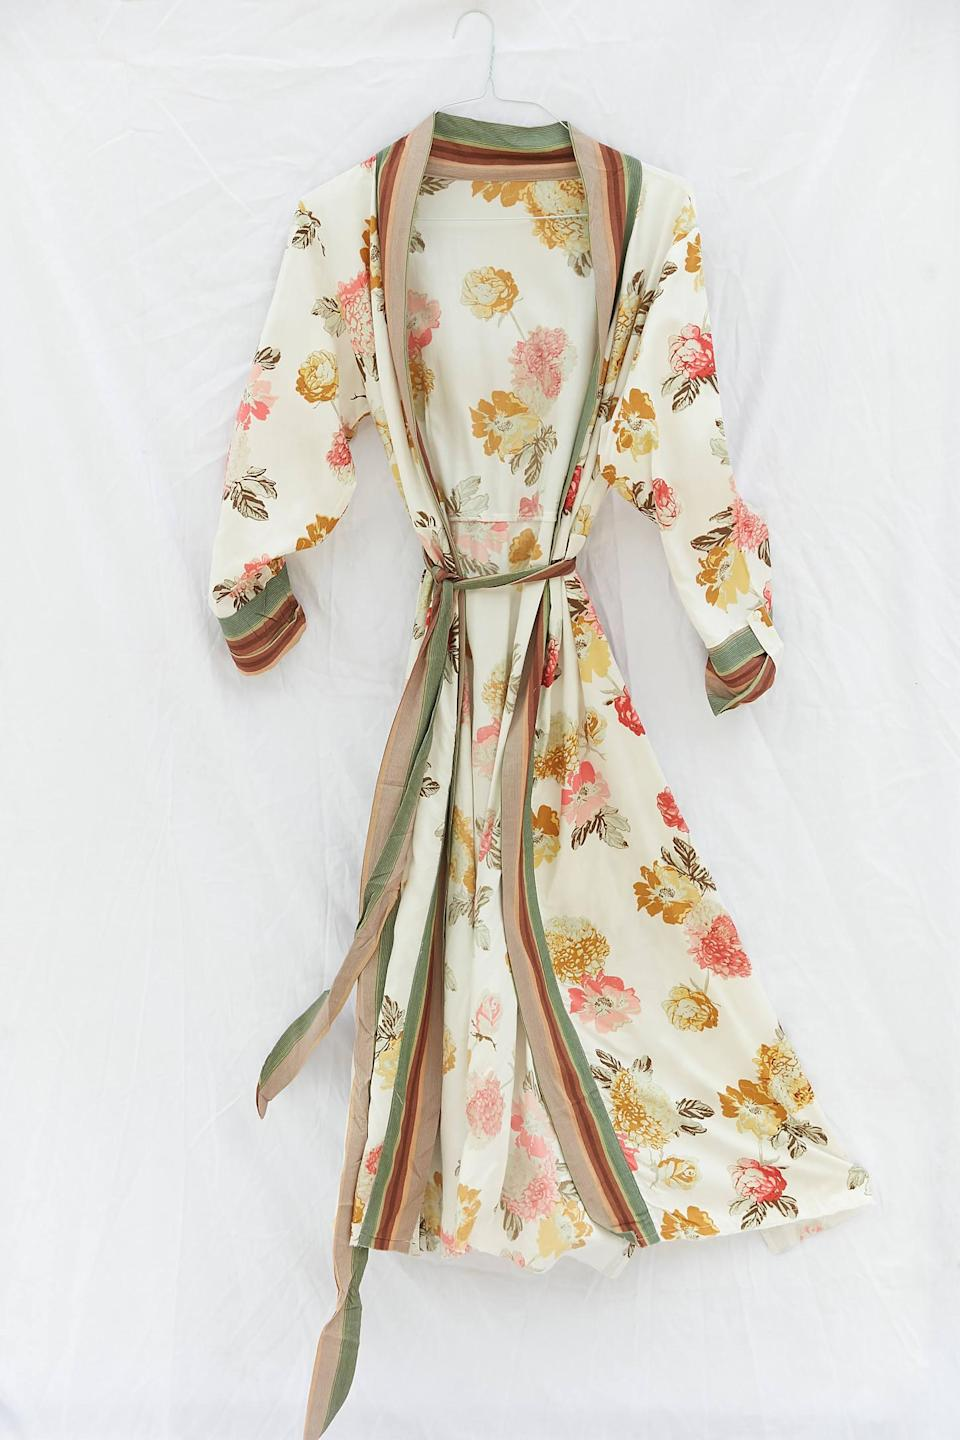 "<h3><a href=""https://www.urbanoutfitters.com/shop/mia-mixed-print-robe?"" rel=""nofollow noopener"" target=""_blank"" data-ylk=""slk:Mia Mixed Print Robe"" class=""link rapid-noclick-resp"">Mia Mixed Print Robe</a></h3><br><br><strong>Urban Outfitters</strong> Mia Mixed Print Robe, $, available at <a href=""https://go.skimresources.com/?id=30283X879131&url=https%3A%2F%2Fwww.urbanoutfitters.com%2Fshop%2Fmia-mixed-print-robe%3F"" rel=""nofollow noopener"" target=""_blank"" data-ylk=""slk:Urban Outfitters"" class=""link rapid-noclick-resp"">Urban Outfitters</a>"